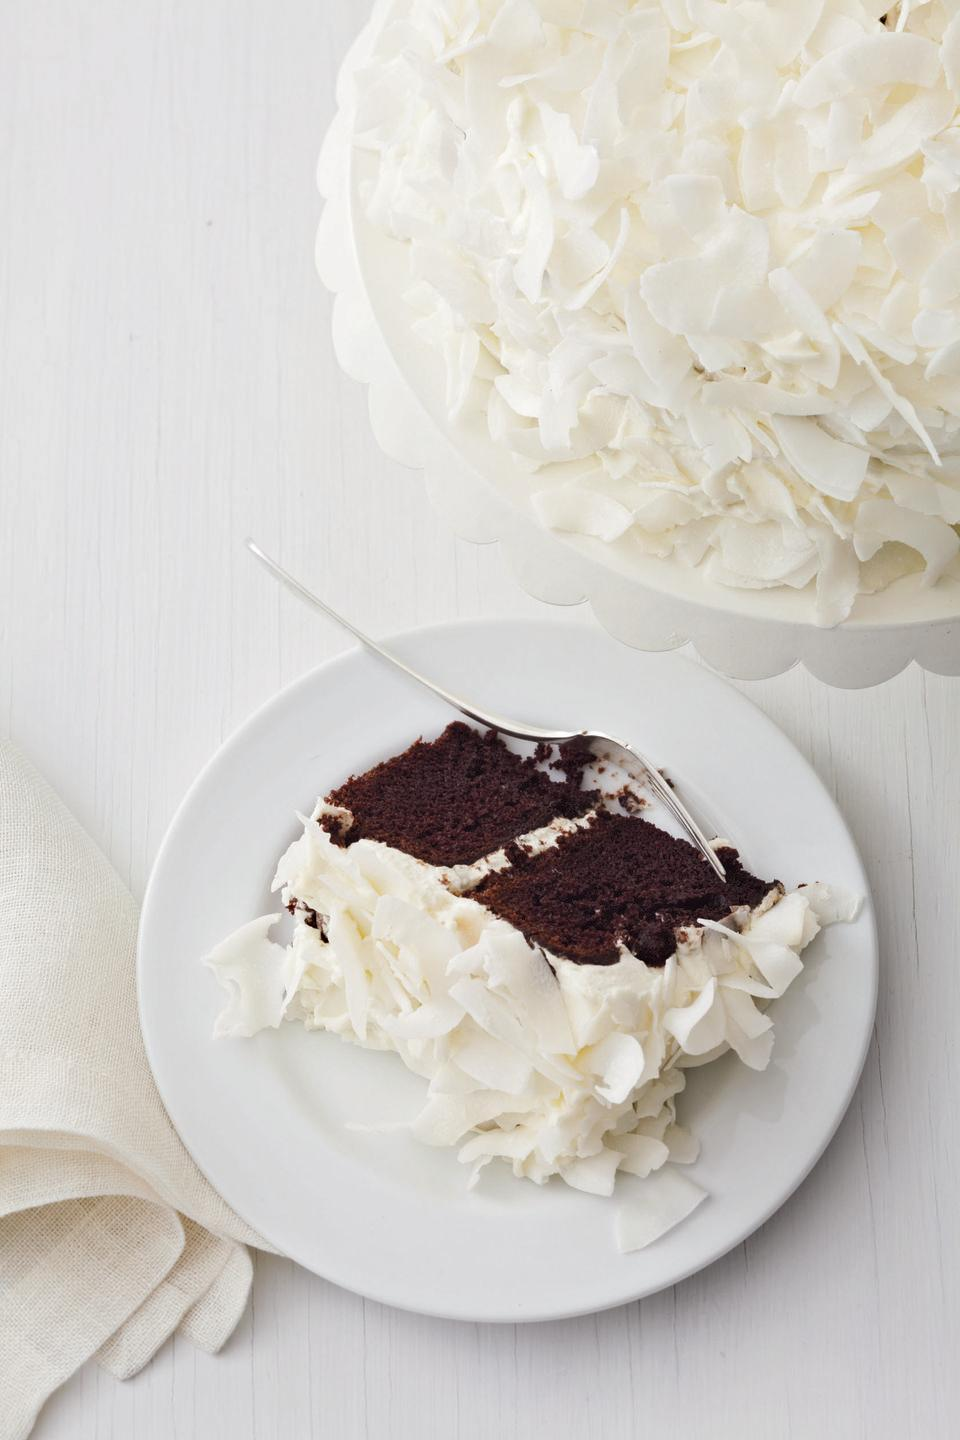 """<p>Sweet and tangy sour cream frosting tops off moist and light chocolate cake for the sweetest ending to your fun-filled Fourth.</p><p><em><a href=""""https://www.goodhousekeeping.com/food-recipes/a13382/chocolate-cake-coconut-cream-recipe-122804/"""" rel=""""nofollow noopener"""" target=""""_blank"""" data-ylk=""""slk:Get the recipe for Chocolate Cake with Coconut Cream »"""" class=""""link rapid-noclick-resp"""">Get the recipe for Chocolate Cake with Coconut Cream »</a></em></p>"""